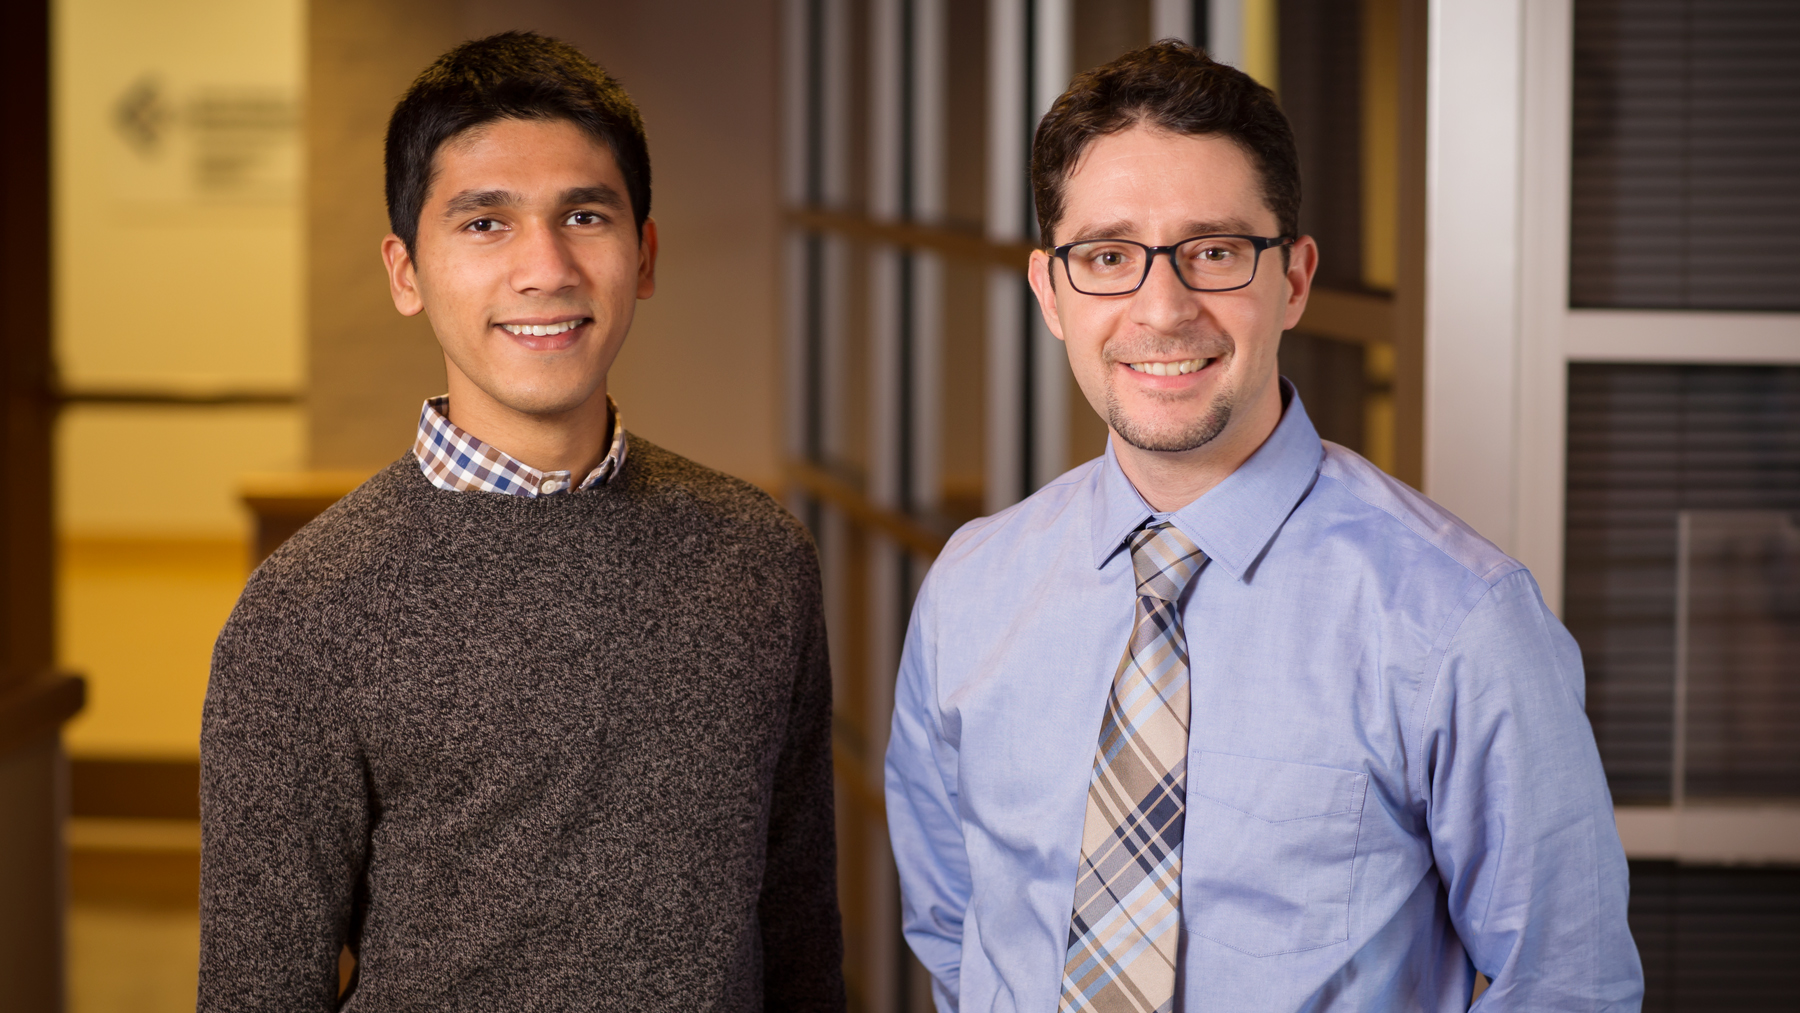 image of mechanical science and engineering professor Kyle Smith and graduate student Rylan Dmello by L. Brian Stauffer